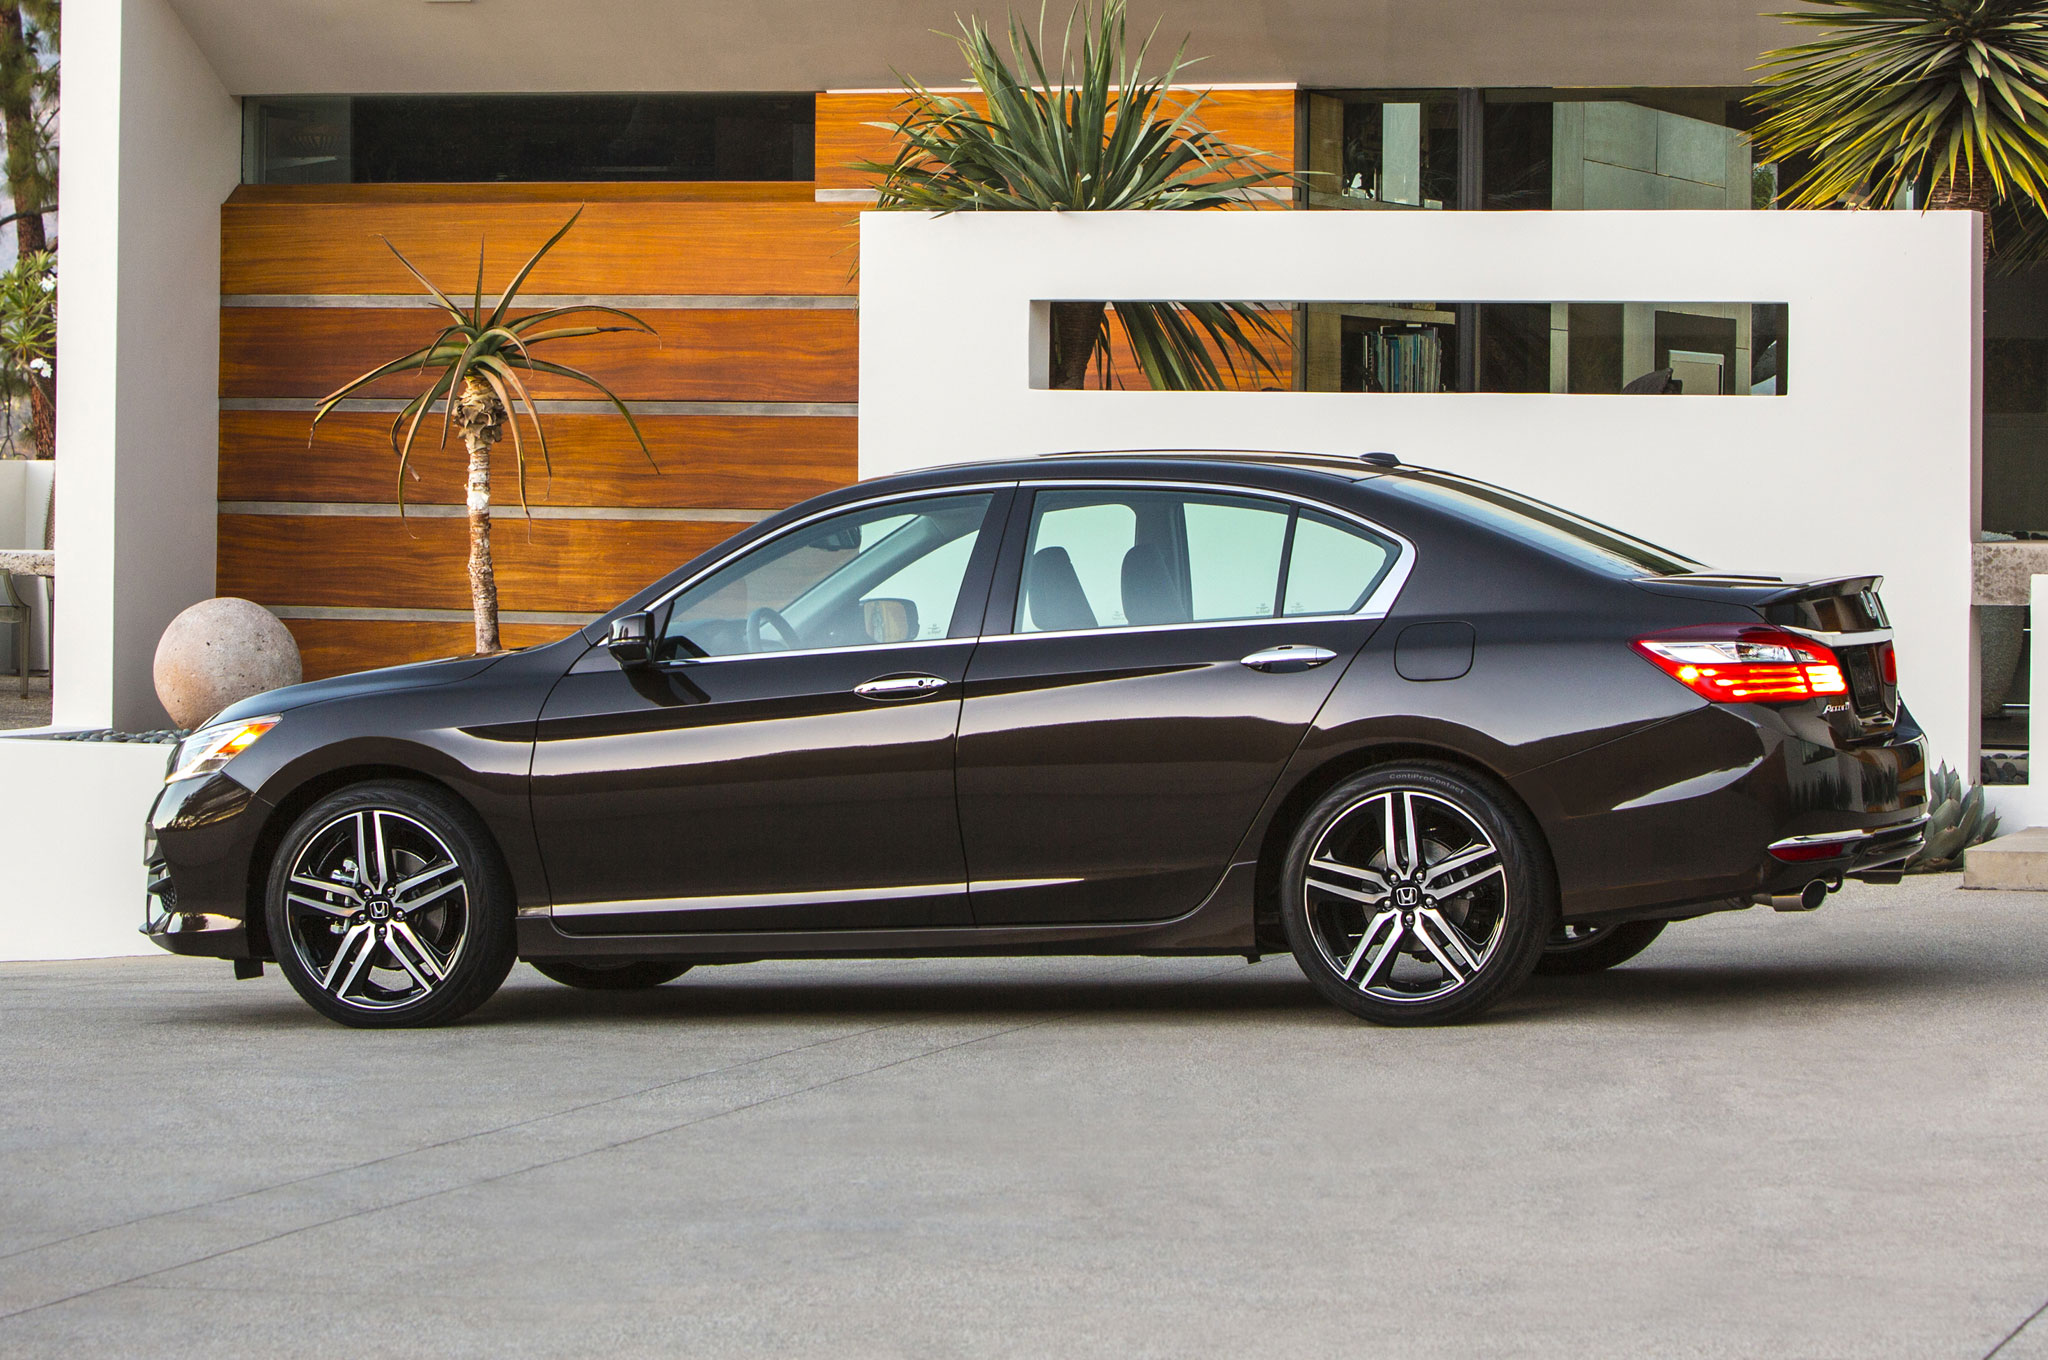 2016 honda accord refreshed adds android auto and apple carplay. Black Bedroom Furniture Sets. Home Design Ideas